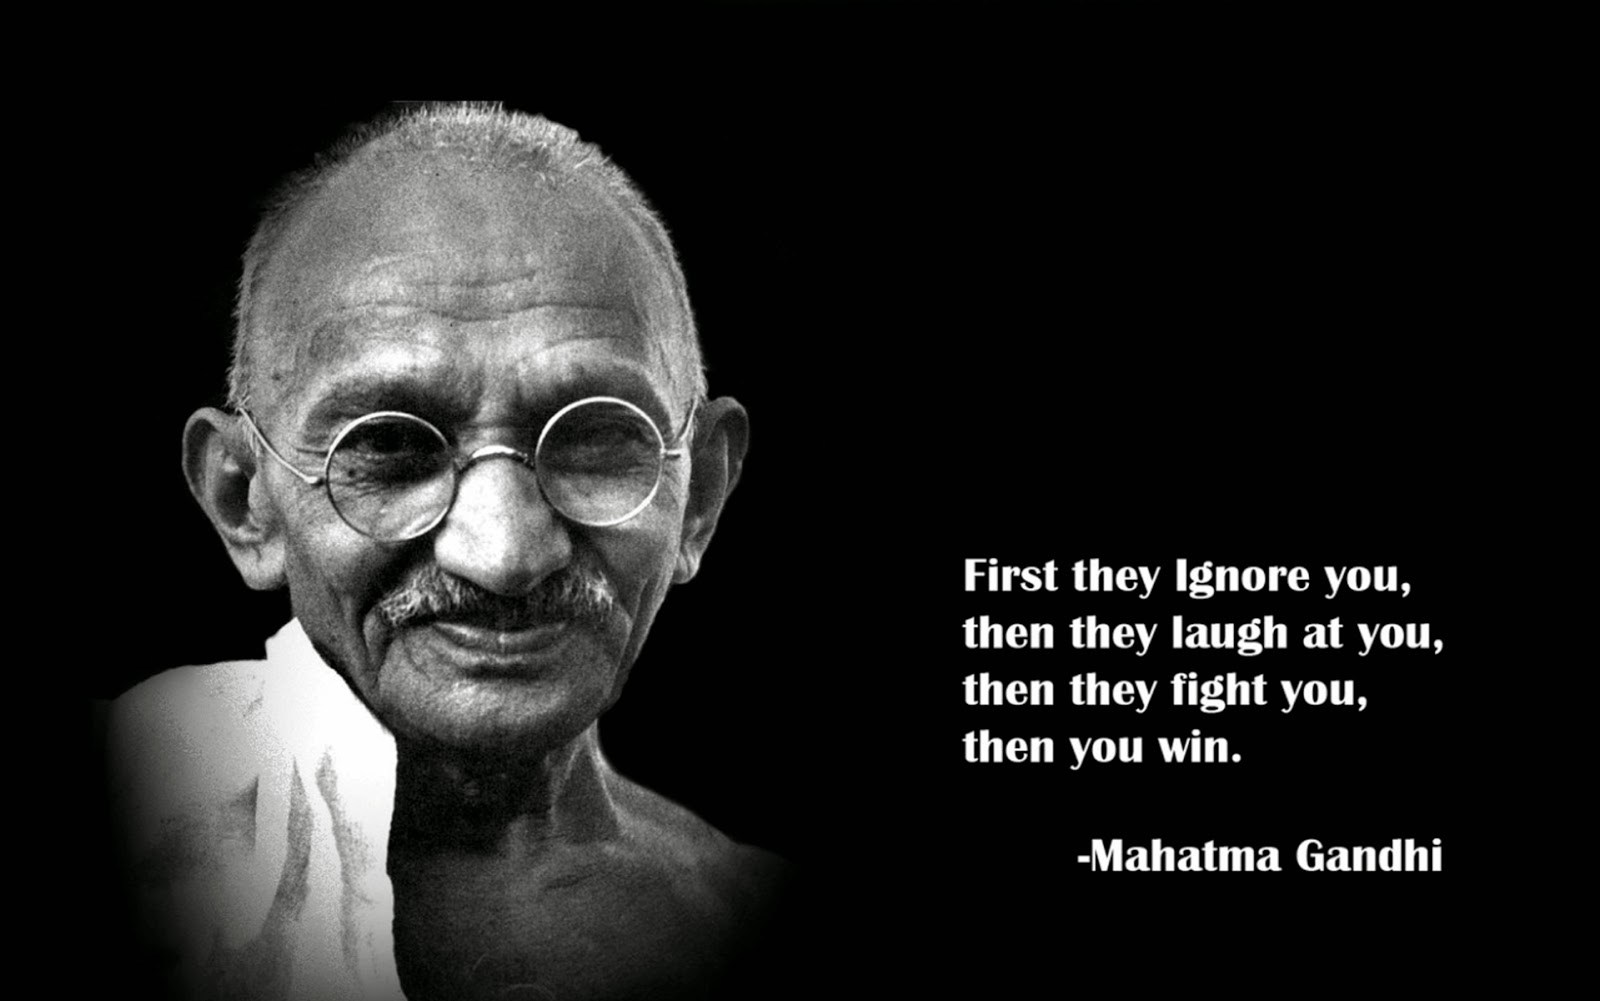 gandhi jayanti speech essay in hindi marathi punjabi urdu  gandhi jayanti speechin english